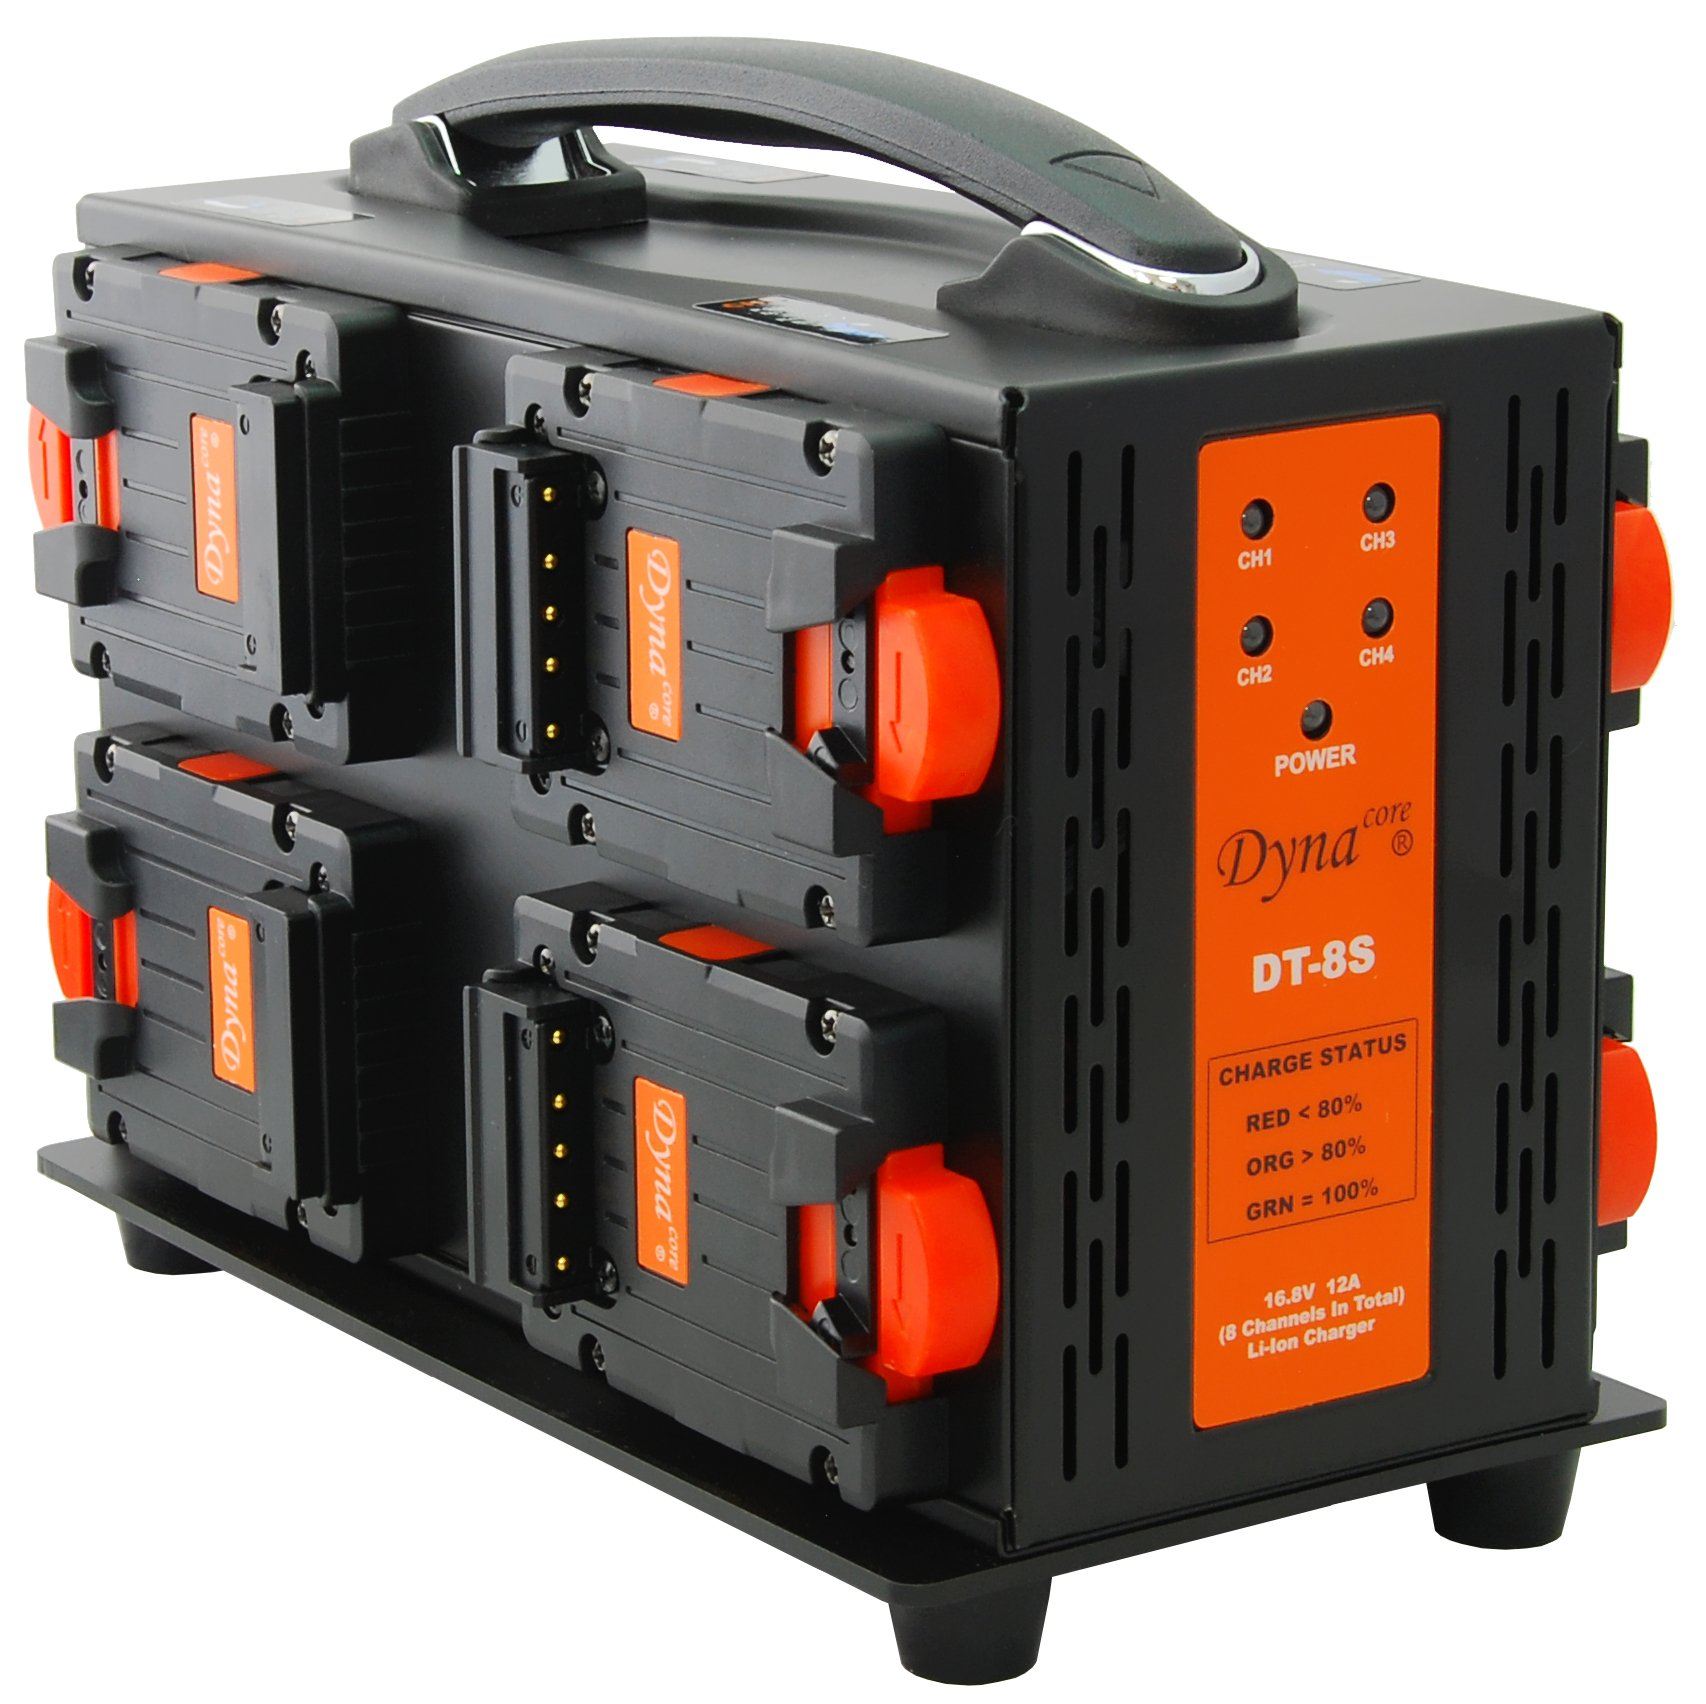 Dynacore DT-8S Portable 2-sided 8 Channel Simultaneous Charger and Power Supply